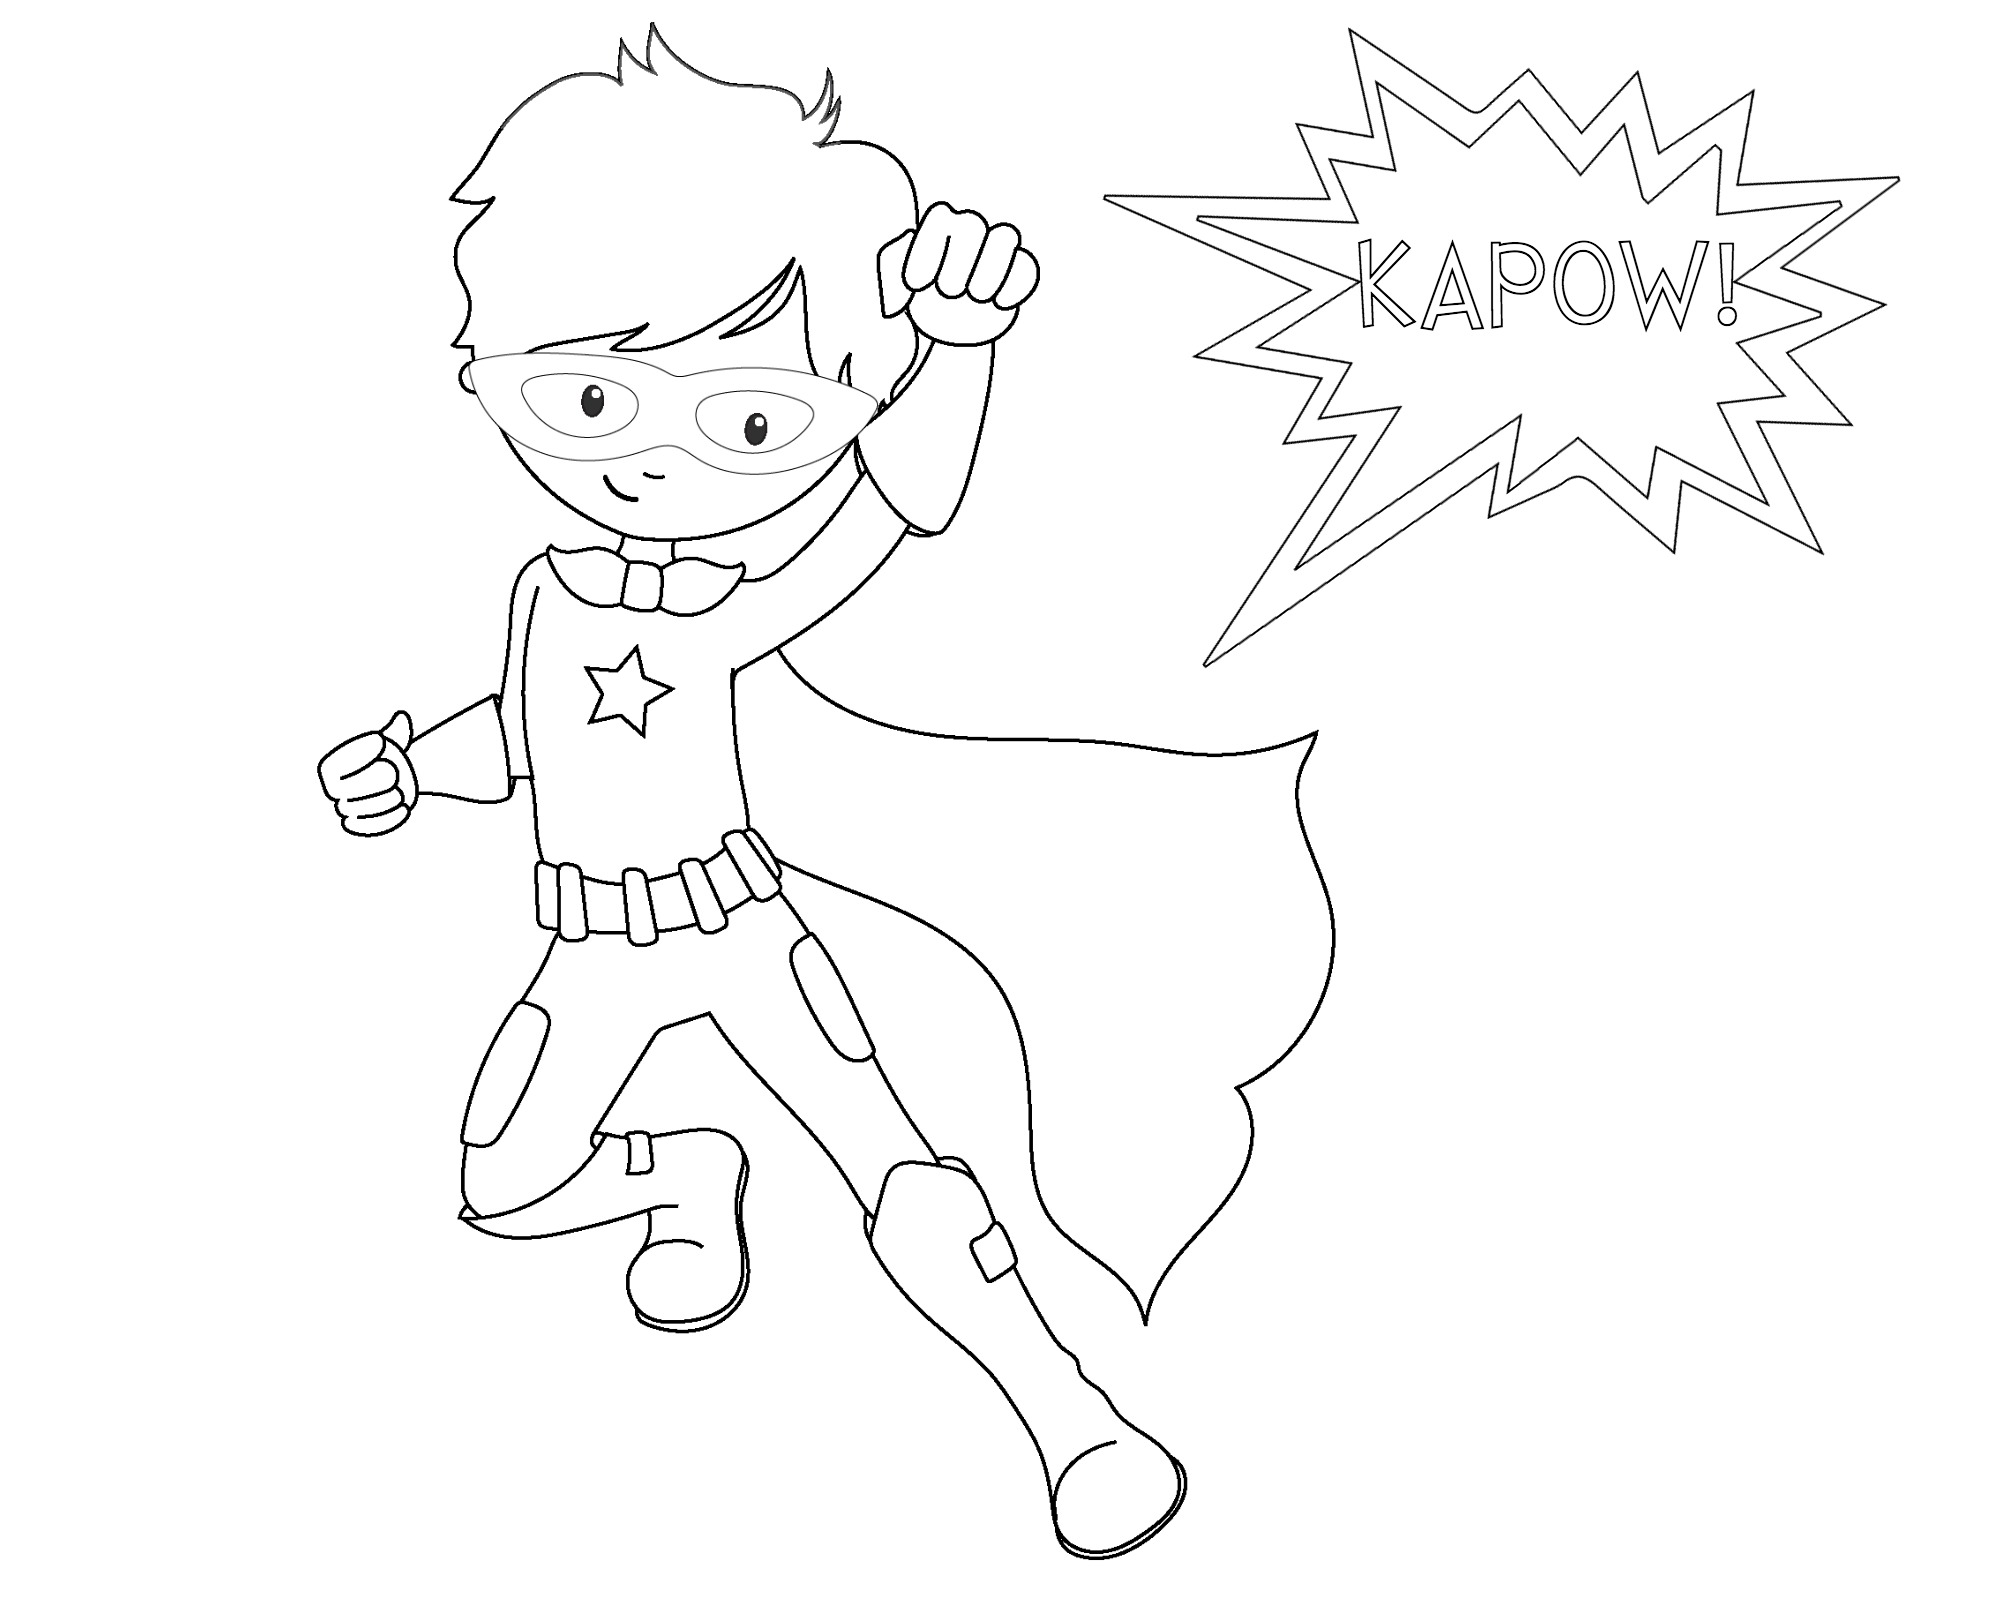 kapow superhero coloring page superhero4 - Superhero Coloring Books